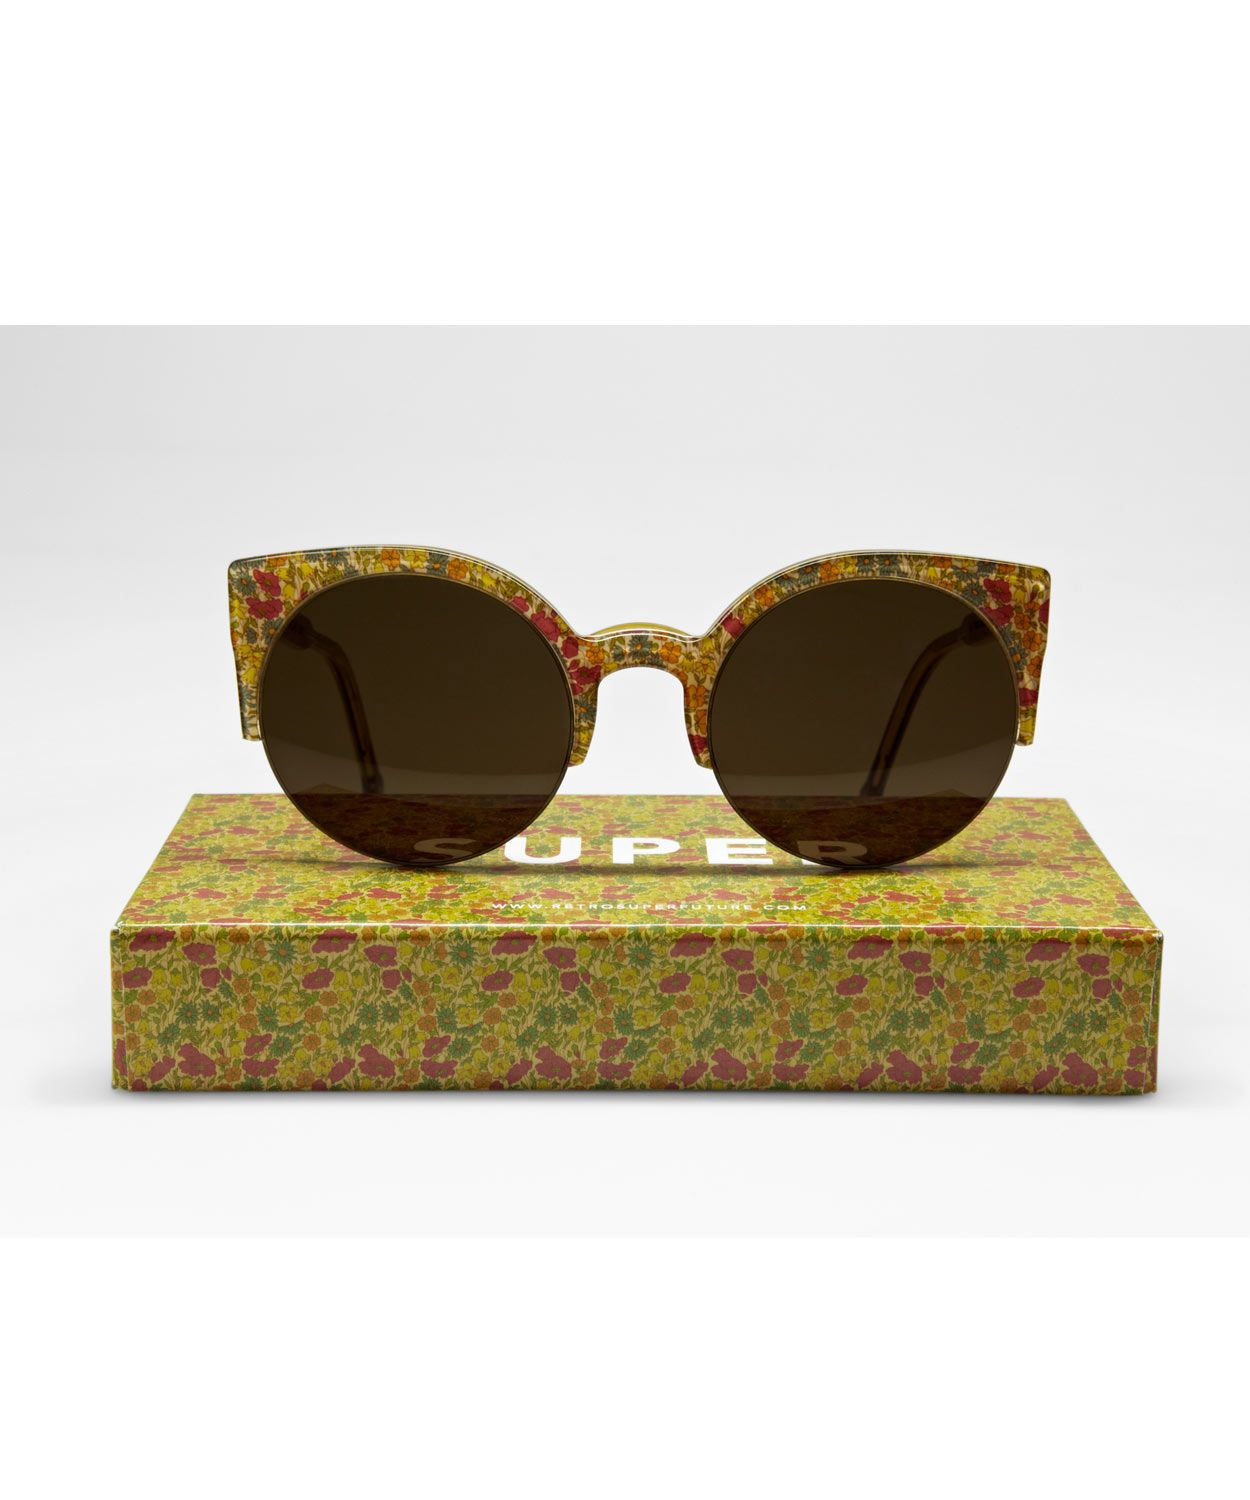 Retro Lucia Liberty print sunglasses. Because c6b0dbdd75